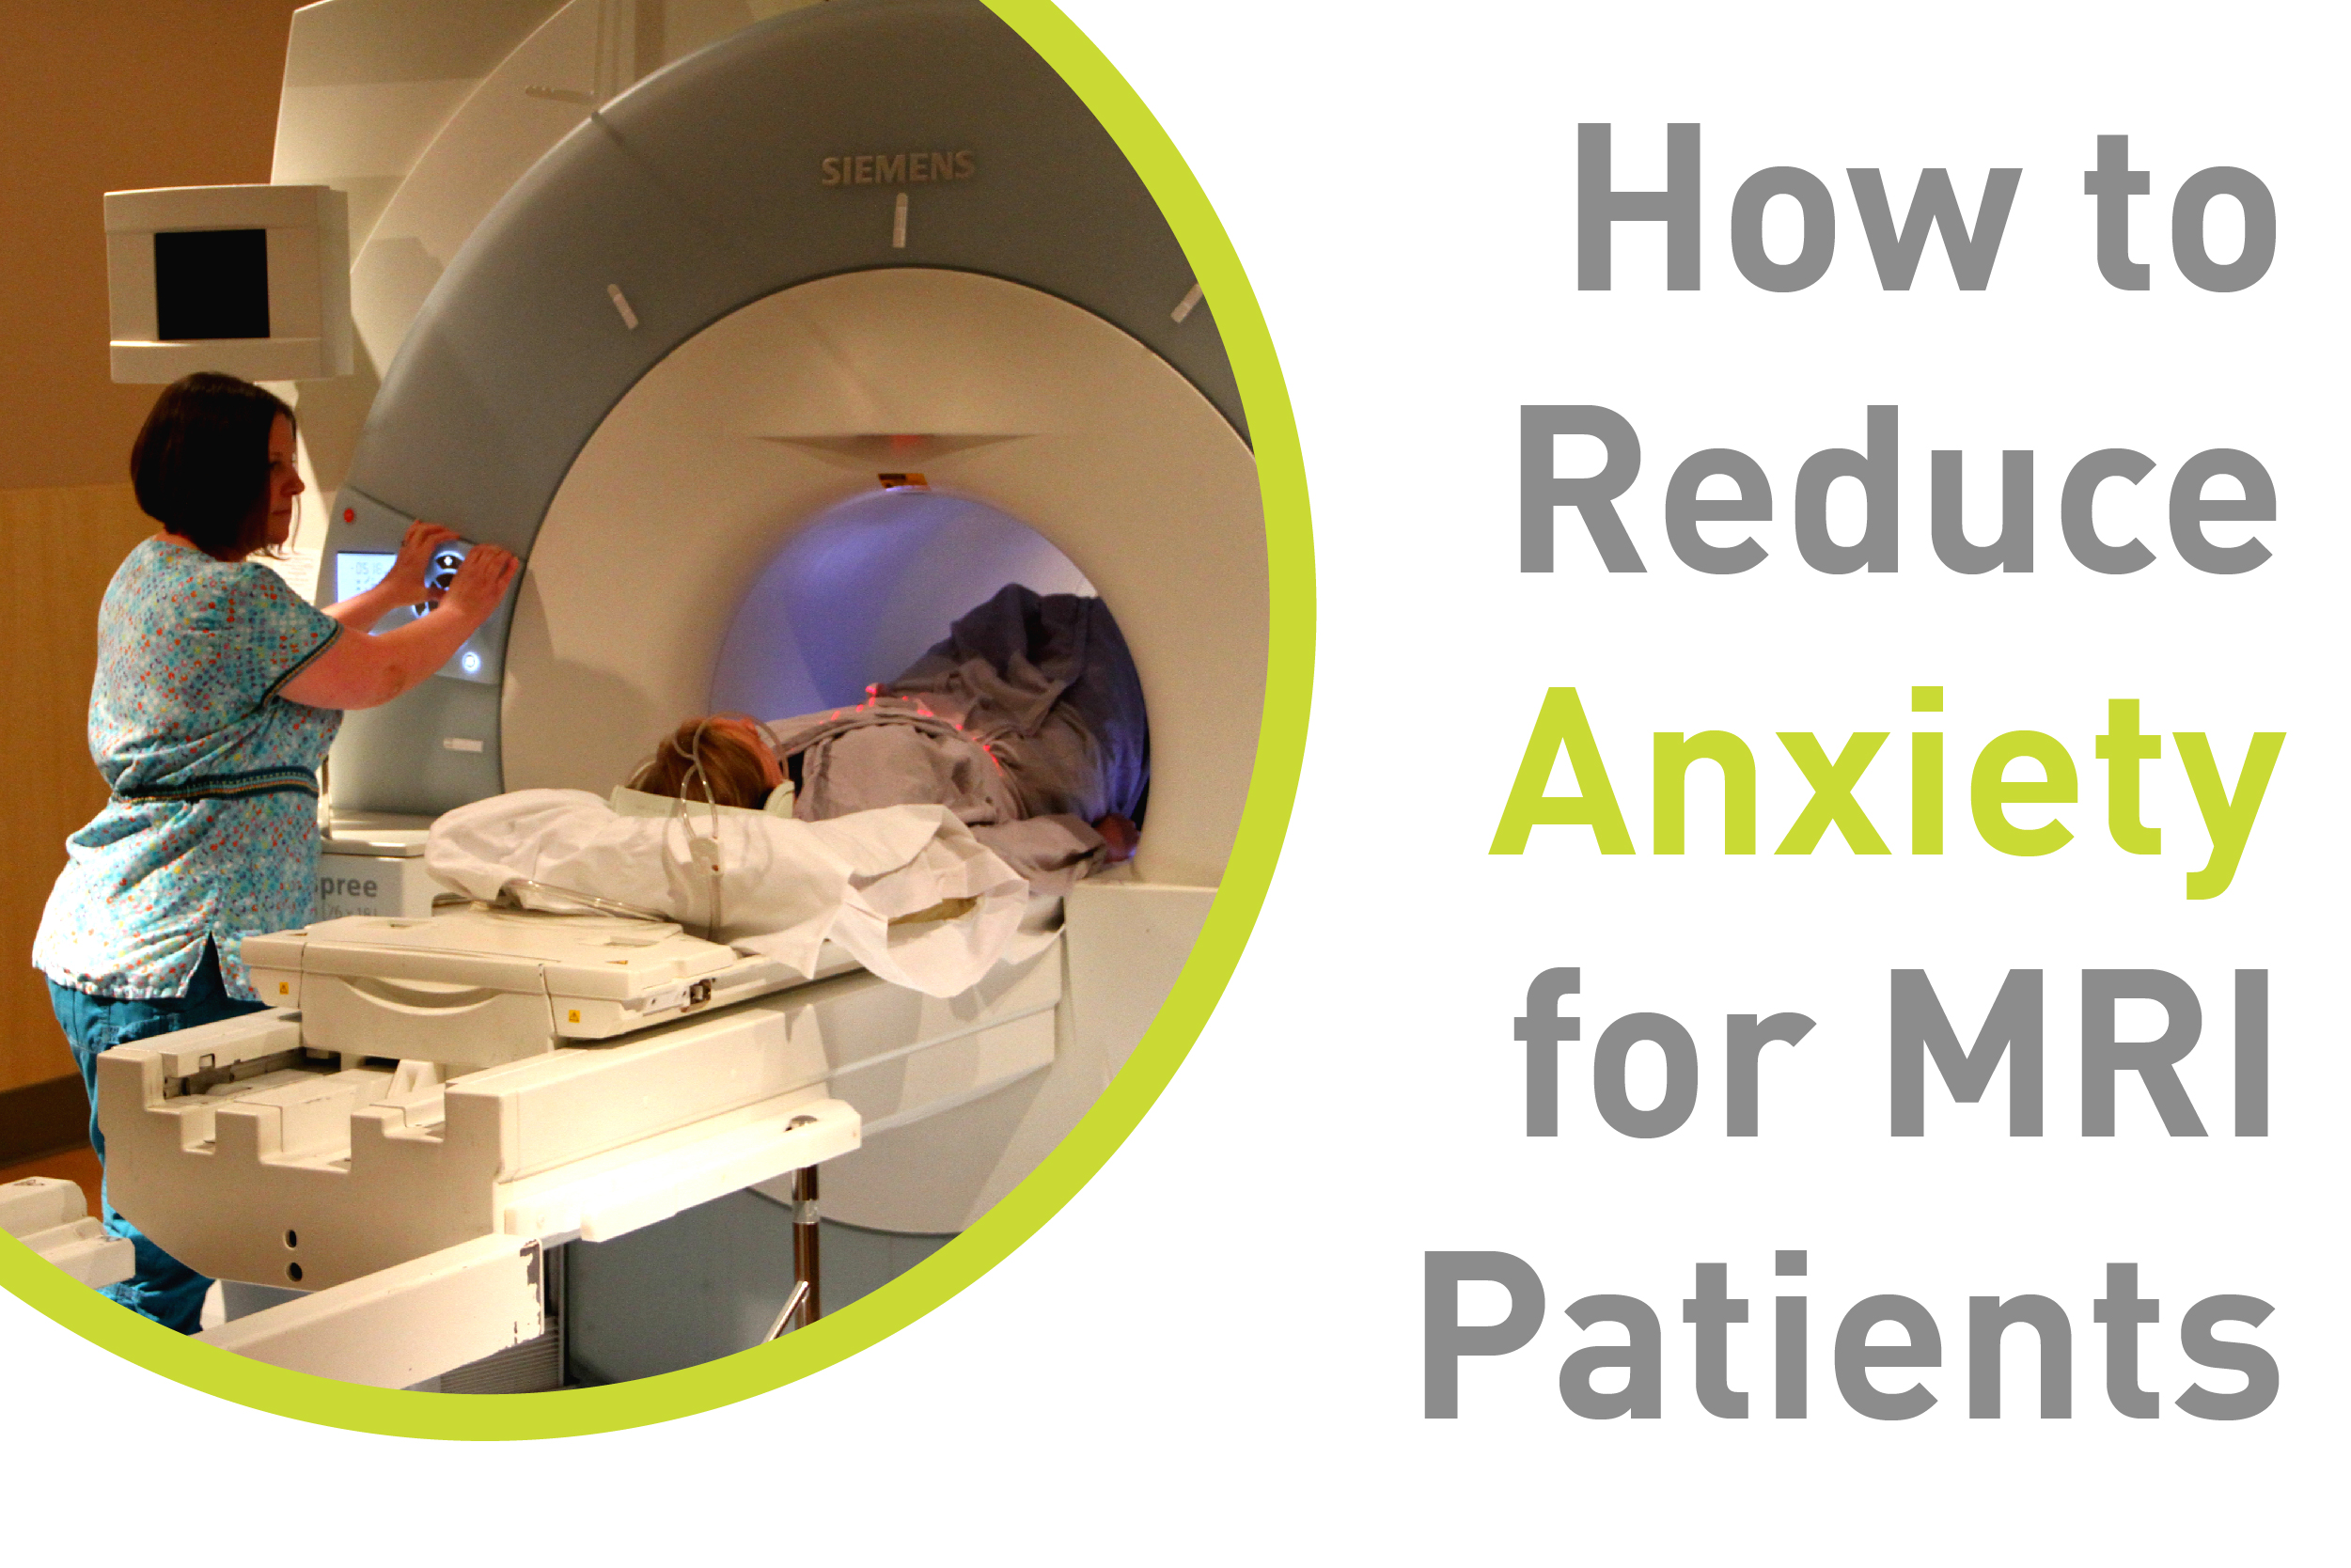 How to Reduce Patient Anxiety During an MRI Scan